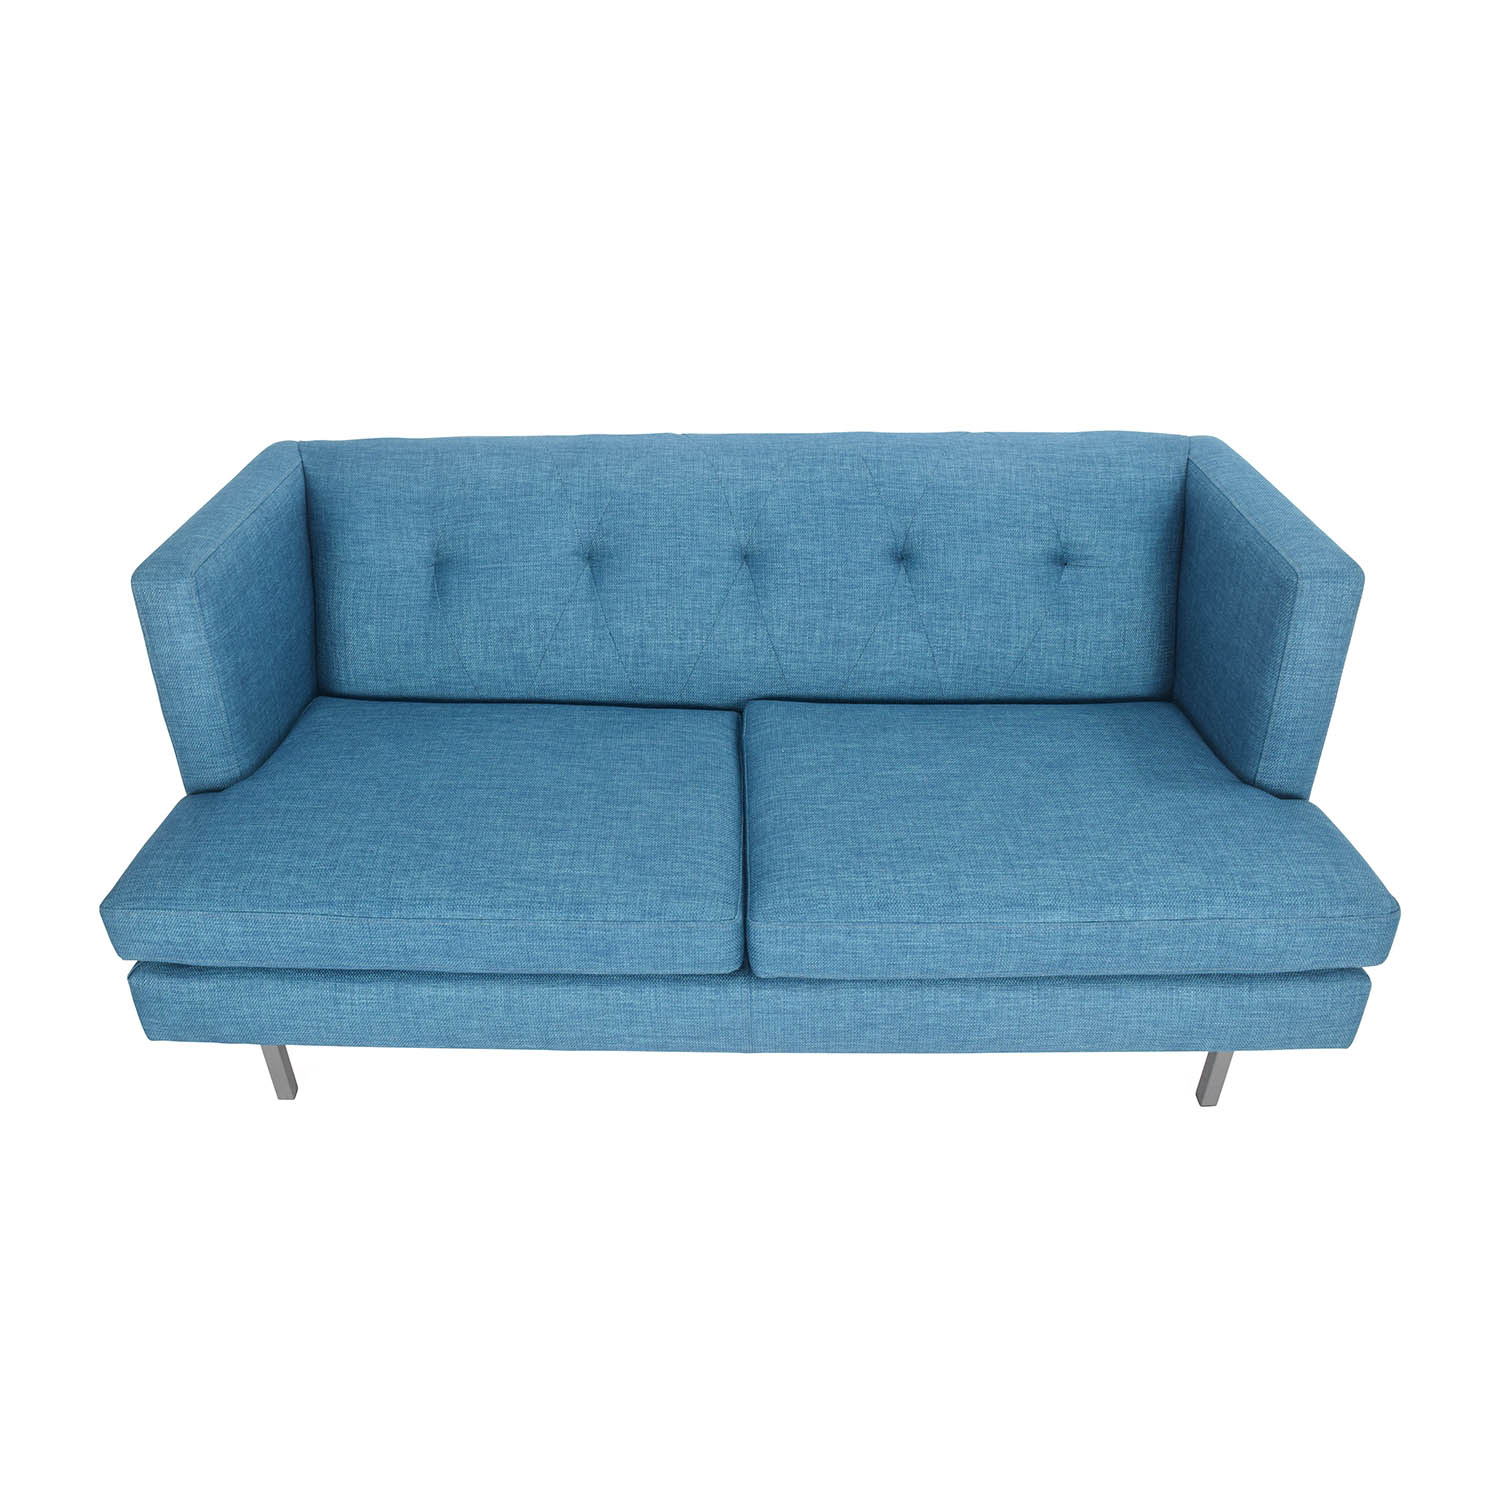 Used Sofa And Loveseat Sofa Bed Ikea New Used Loveseat Modern Queen Ebay Thesofa